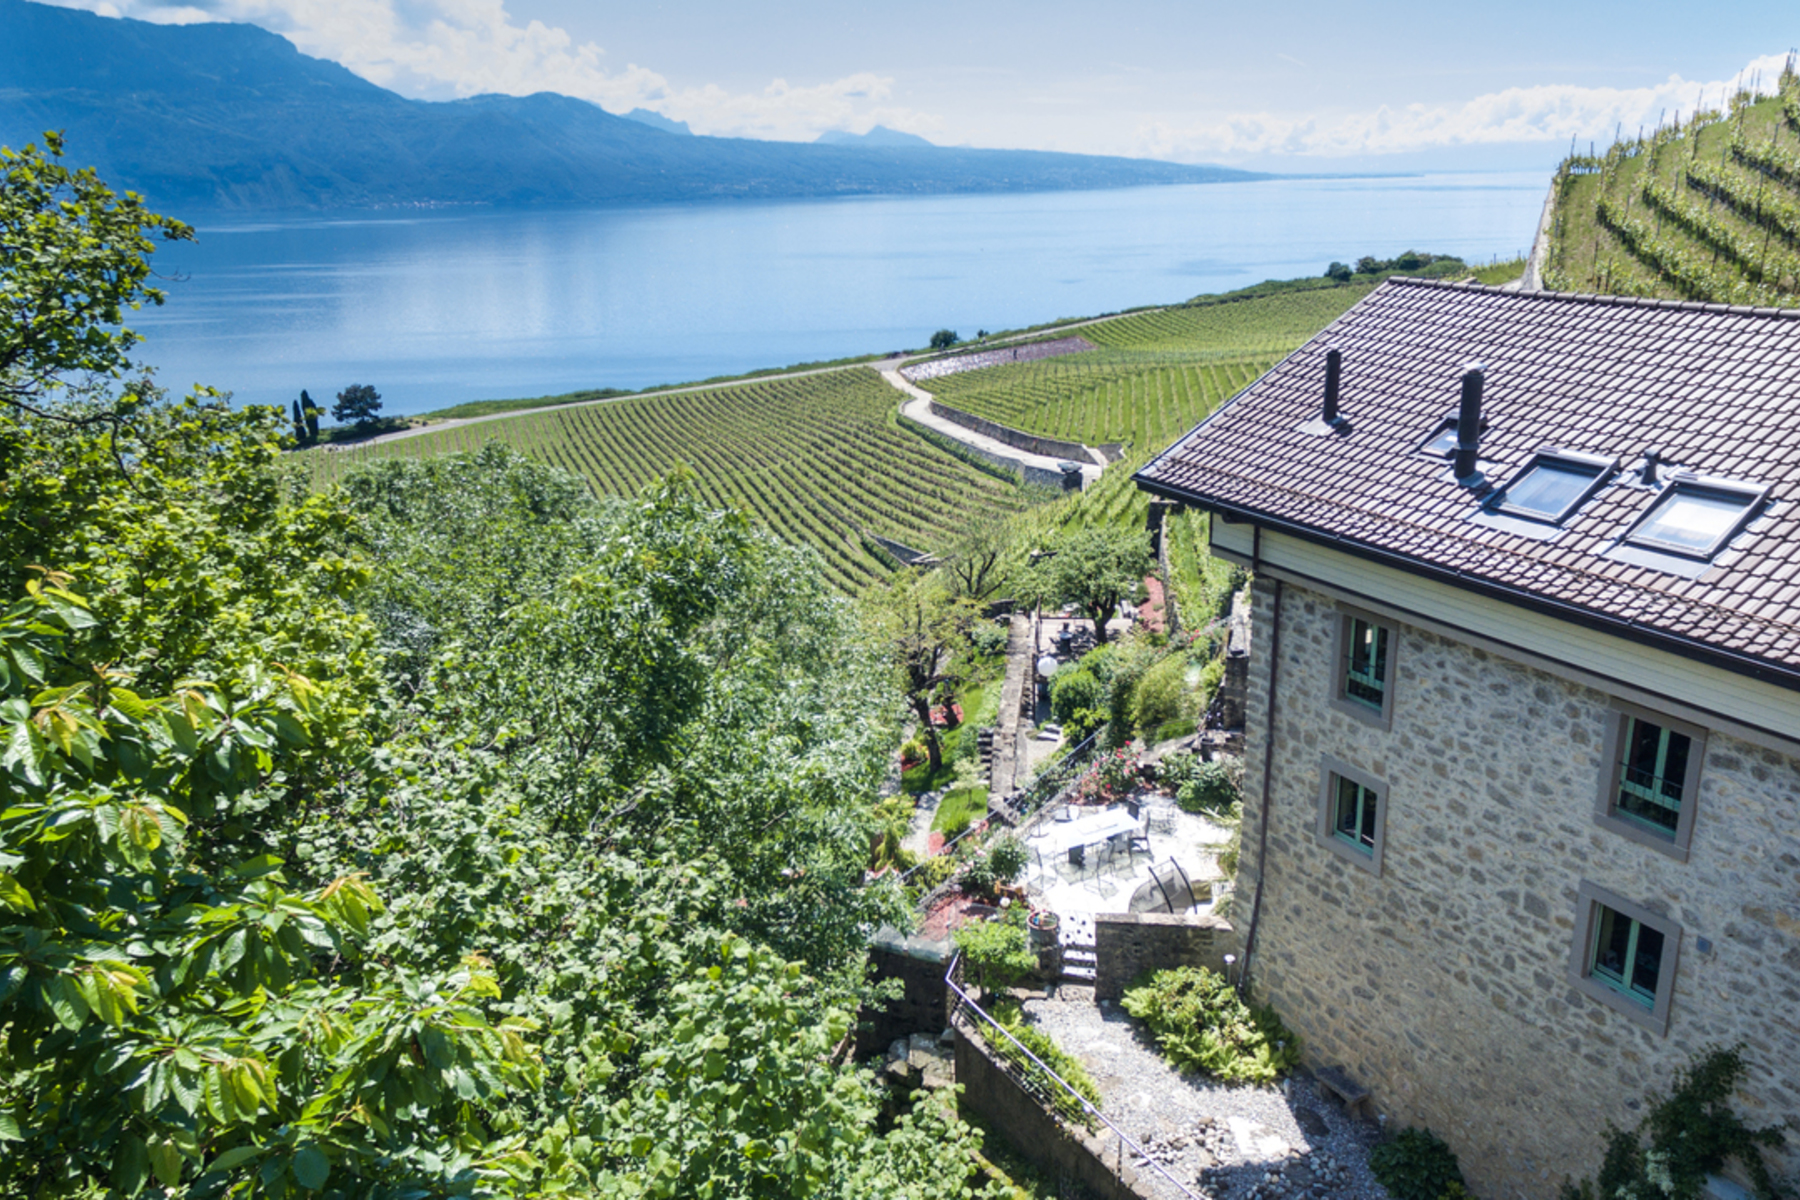 Single Family Home for Sale at Rare property in the heart of Lavaux Spectacular lake view Puidoux Chexbres, Vaud, 1071 Switzerland